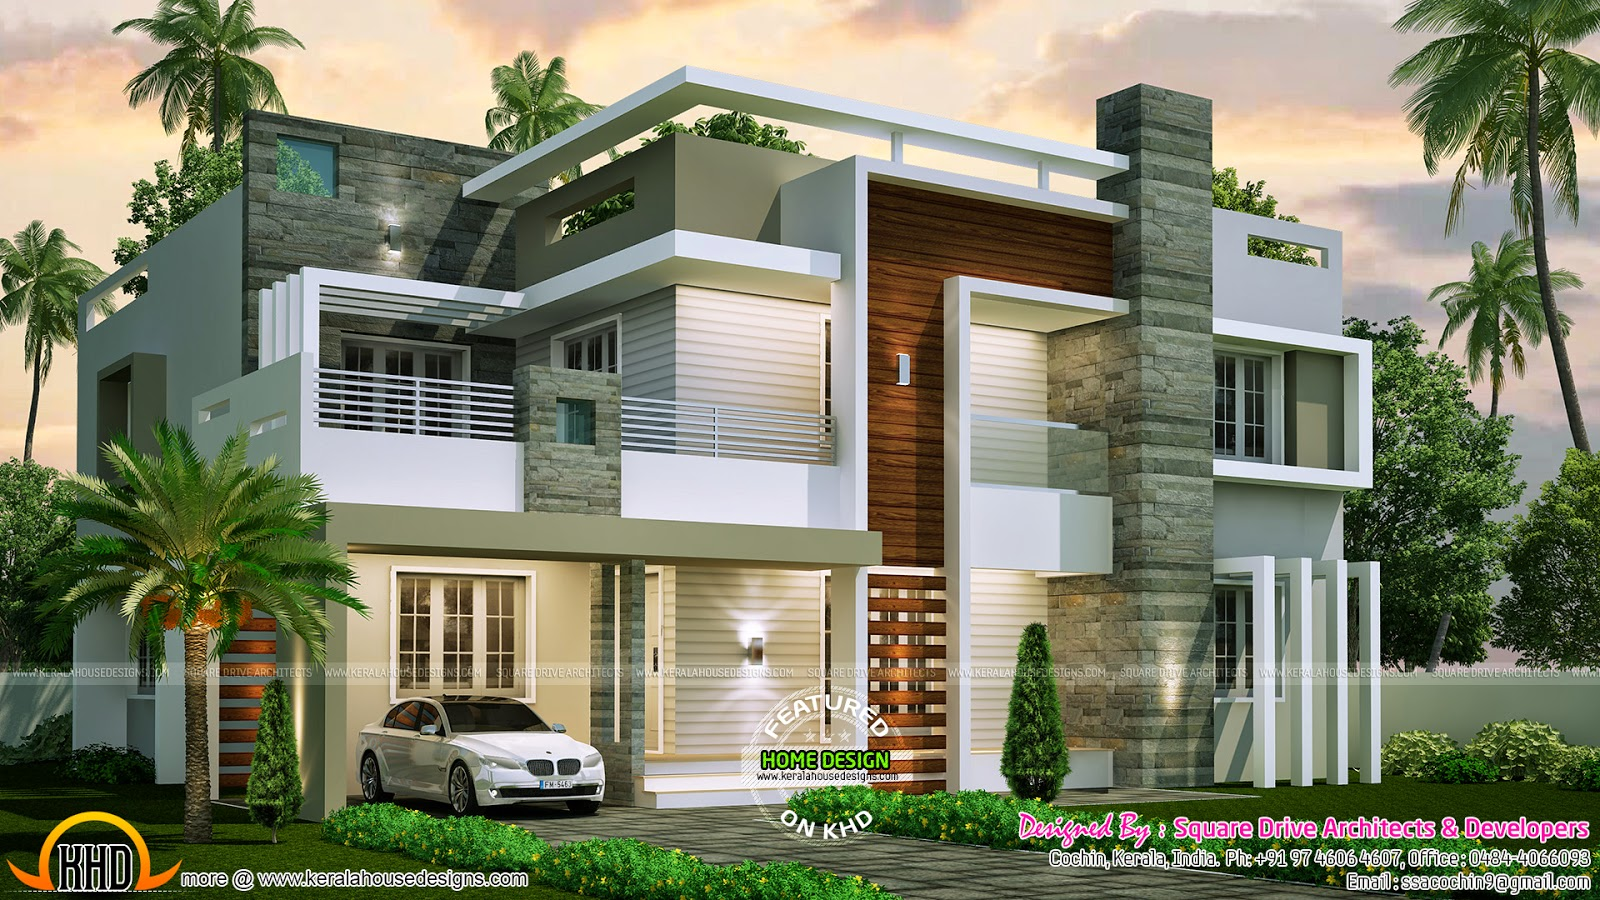 4 bedroom contemporary home design kerala home design Contemporary style house